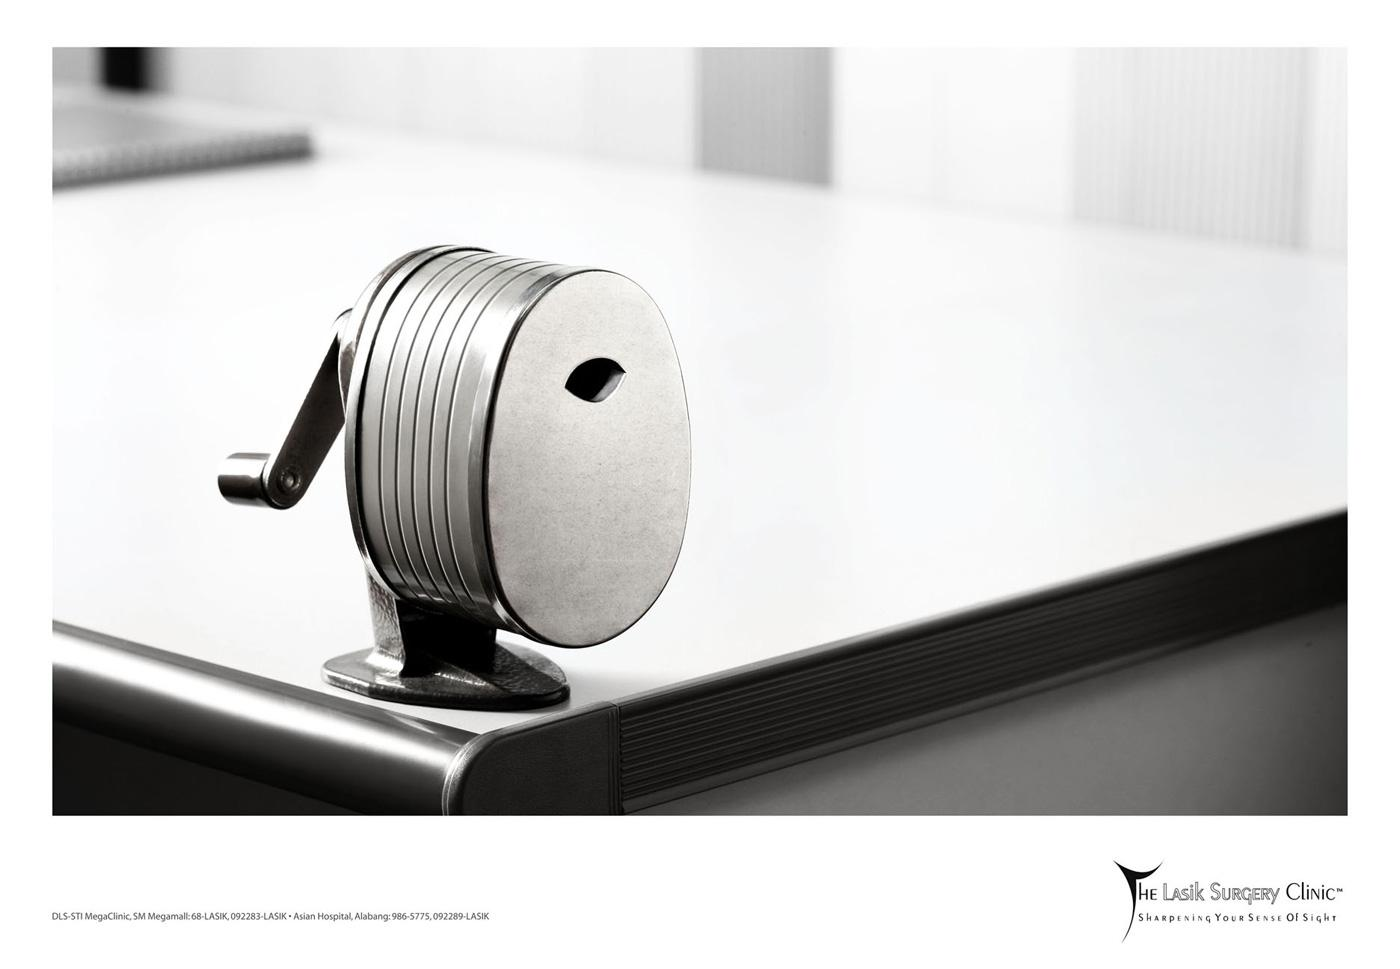 The Lasik Surgery Clinic Print Ad -  Sharpener